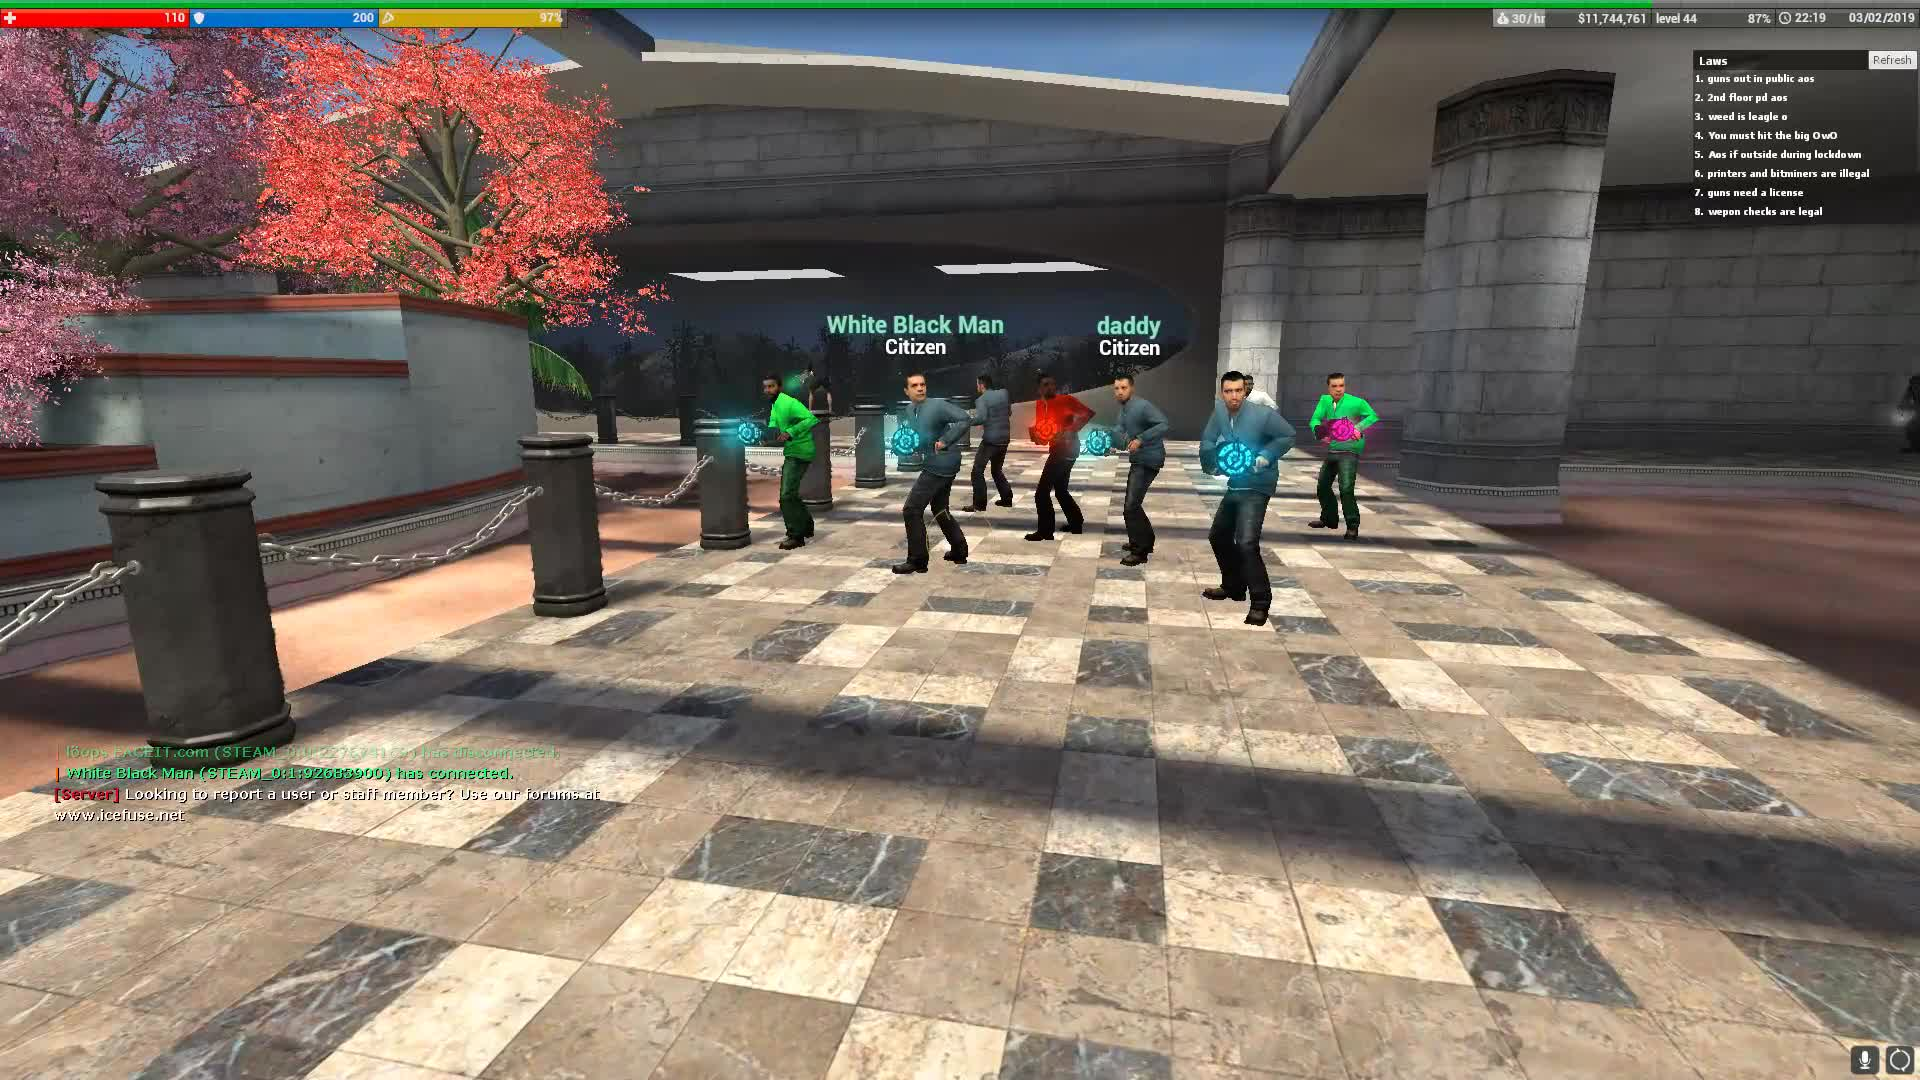 Gmod Gifs Search | Search & Share on Homdor